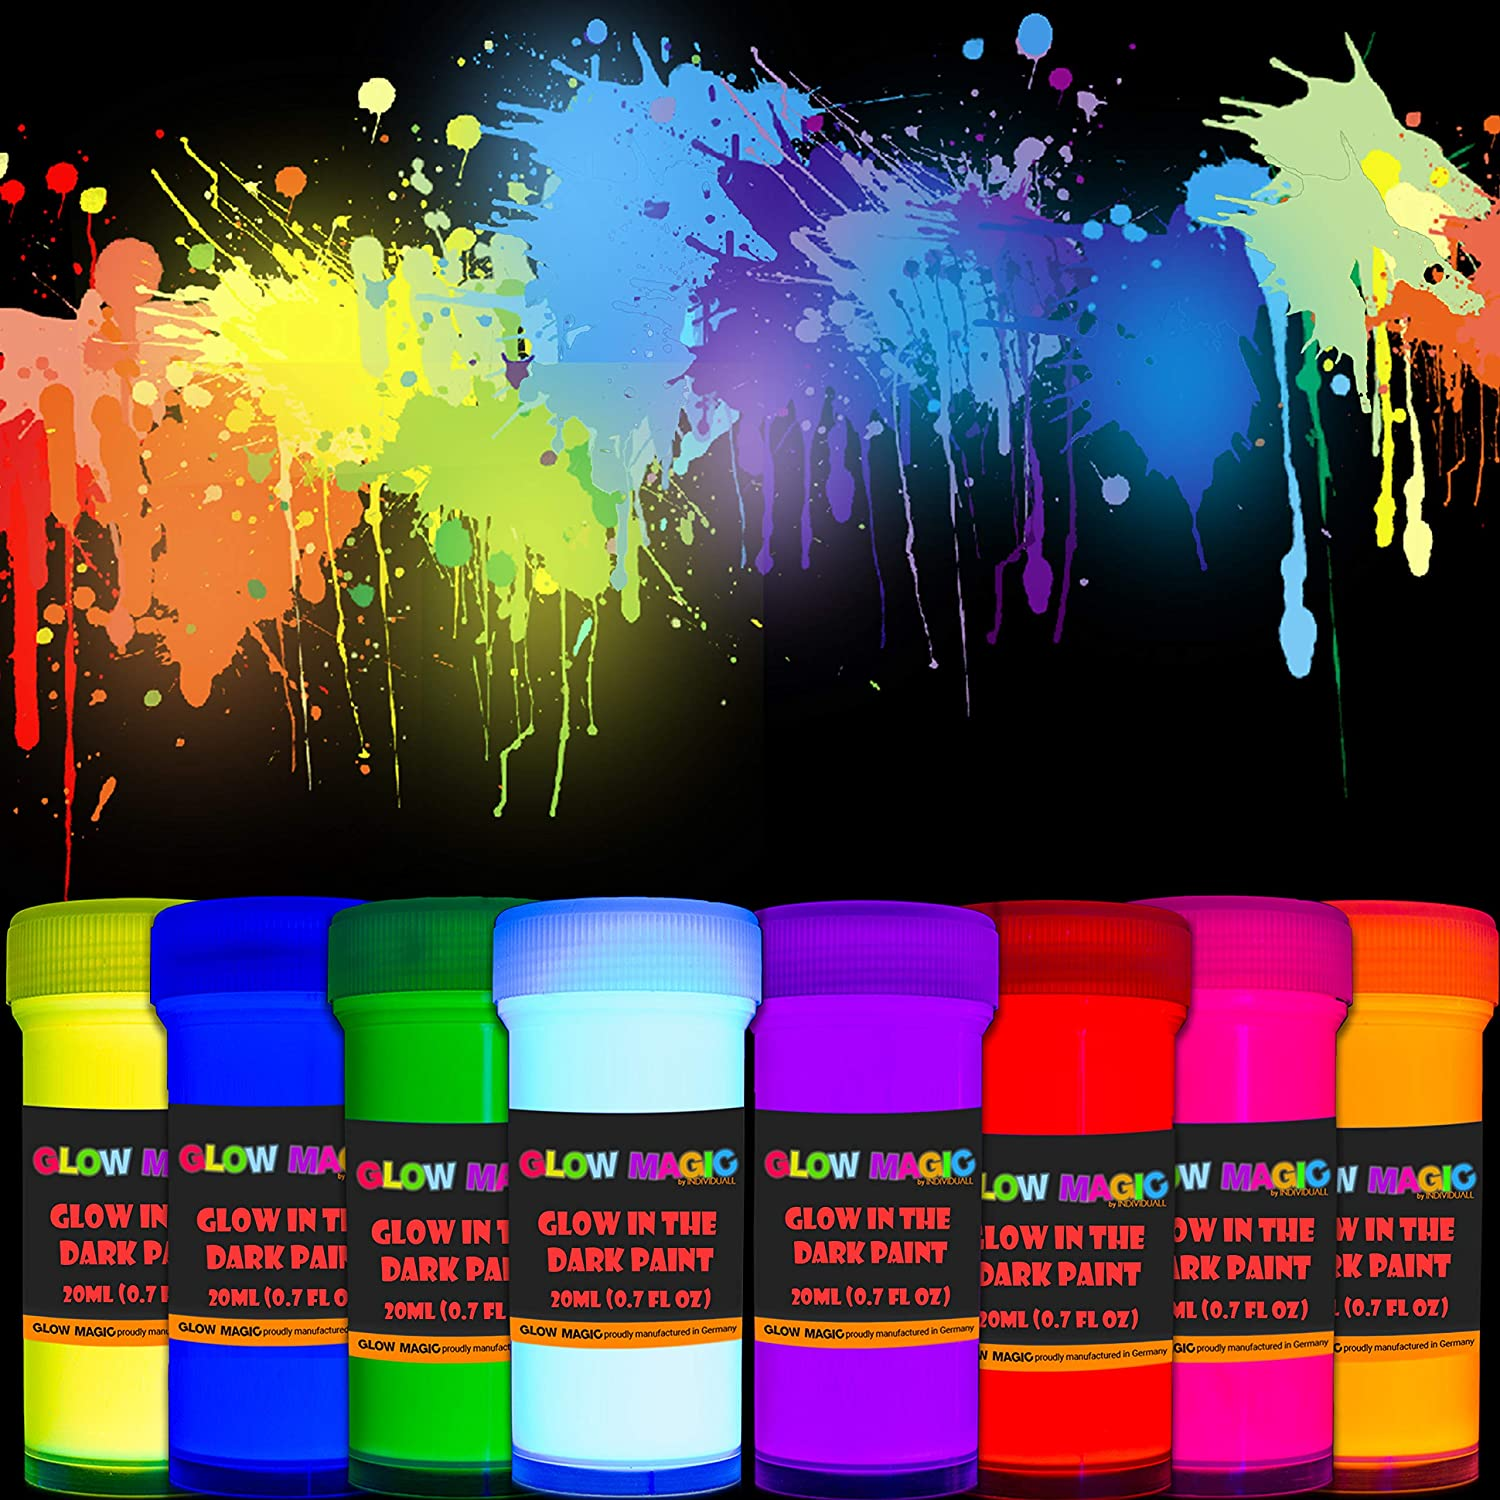 individuall Glow in The Dark Acrylic Paint Set - Self-Luminous Phosphorescent Glowing Neon Paint